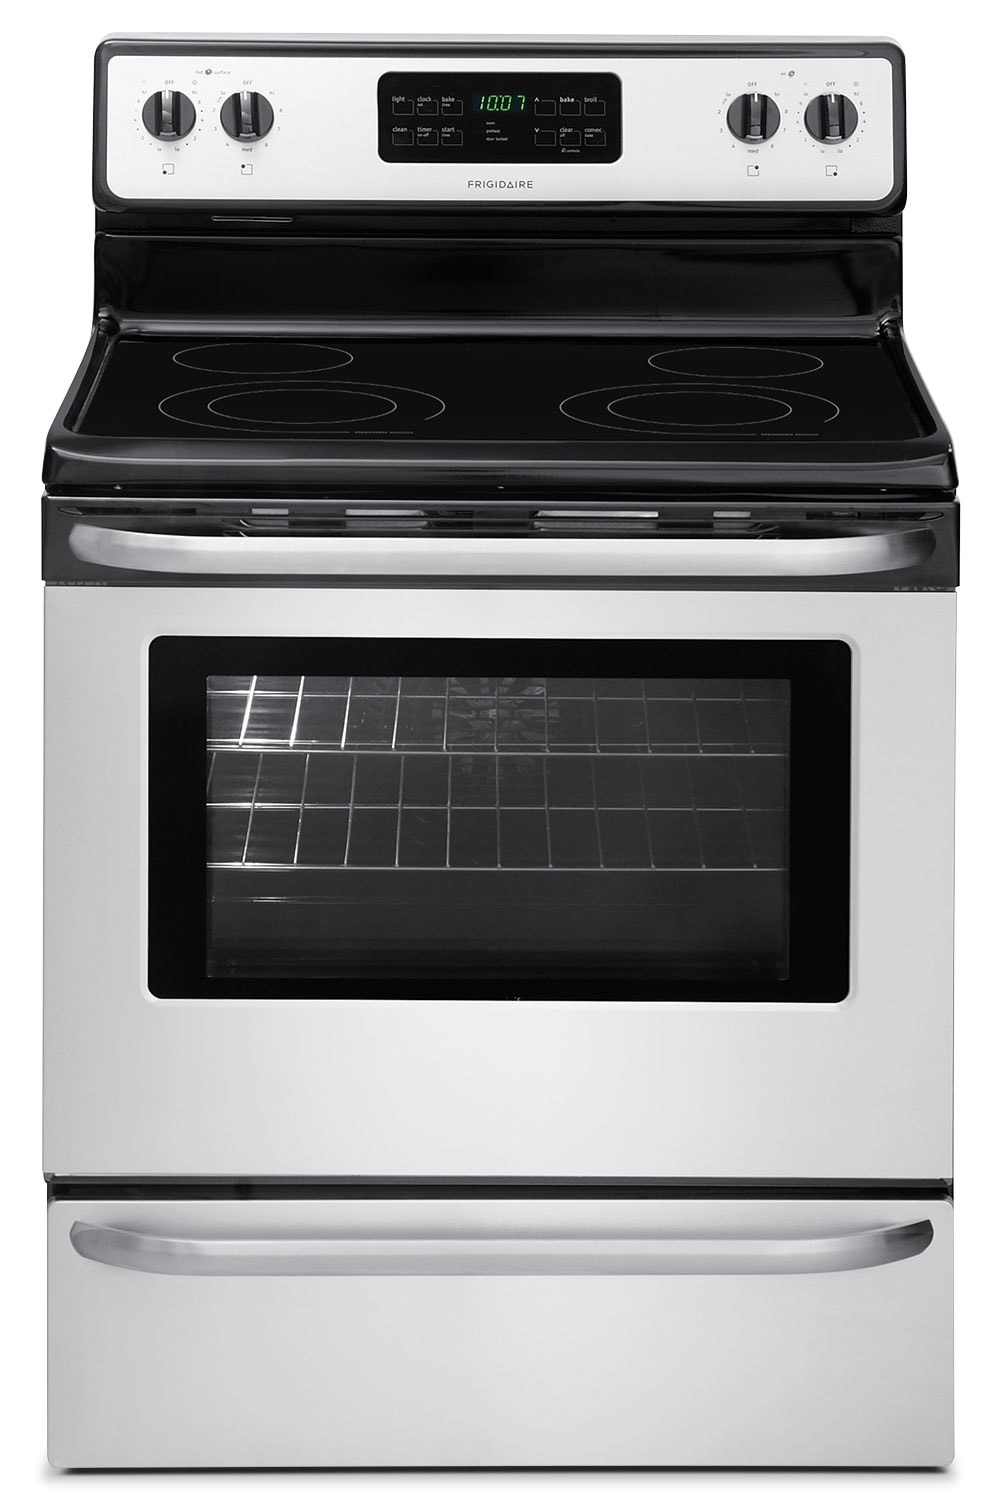 Frigidaire Stainless Steel Electric Range - CFEF3024RS